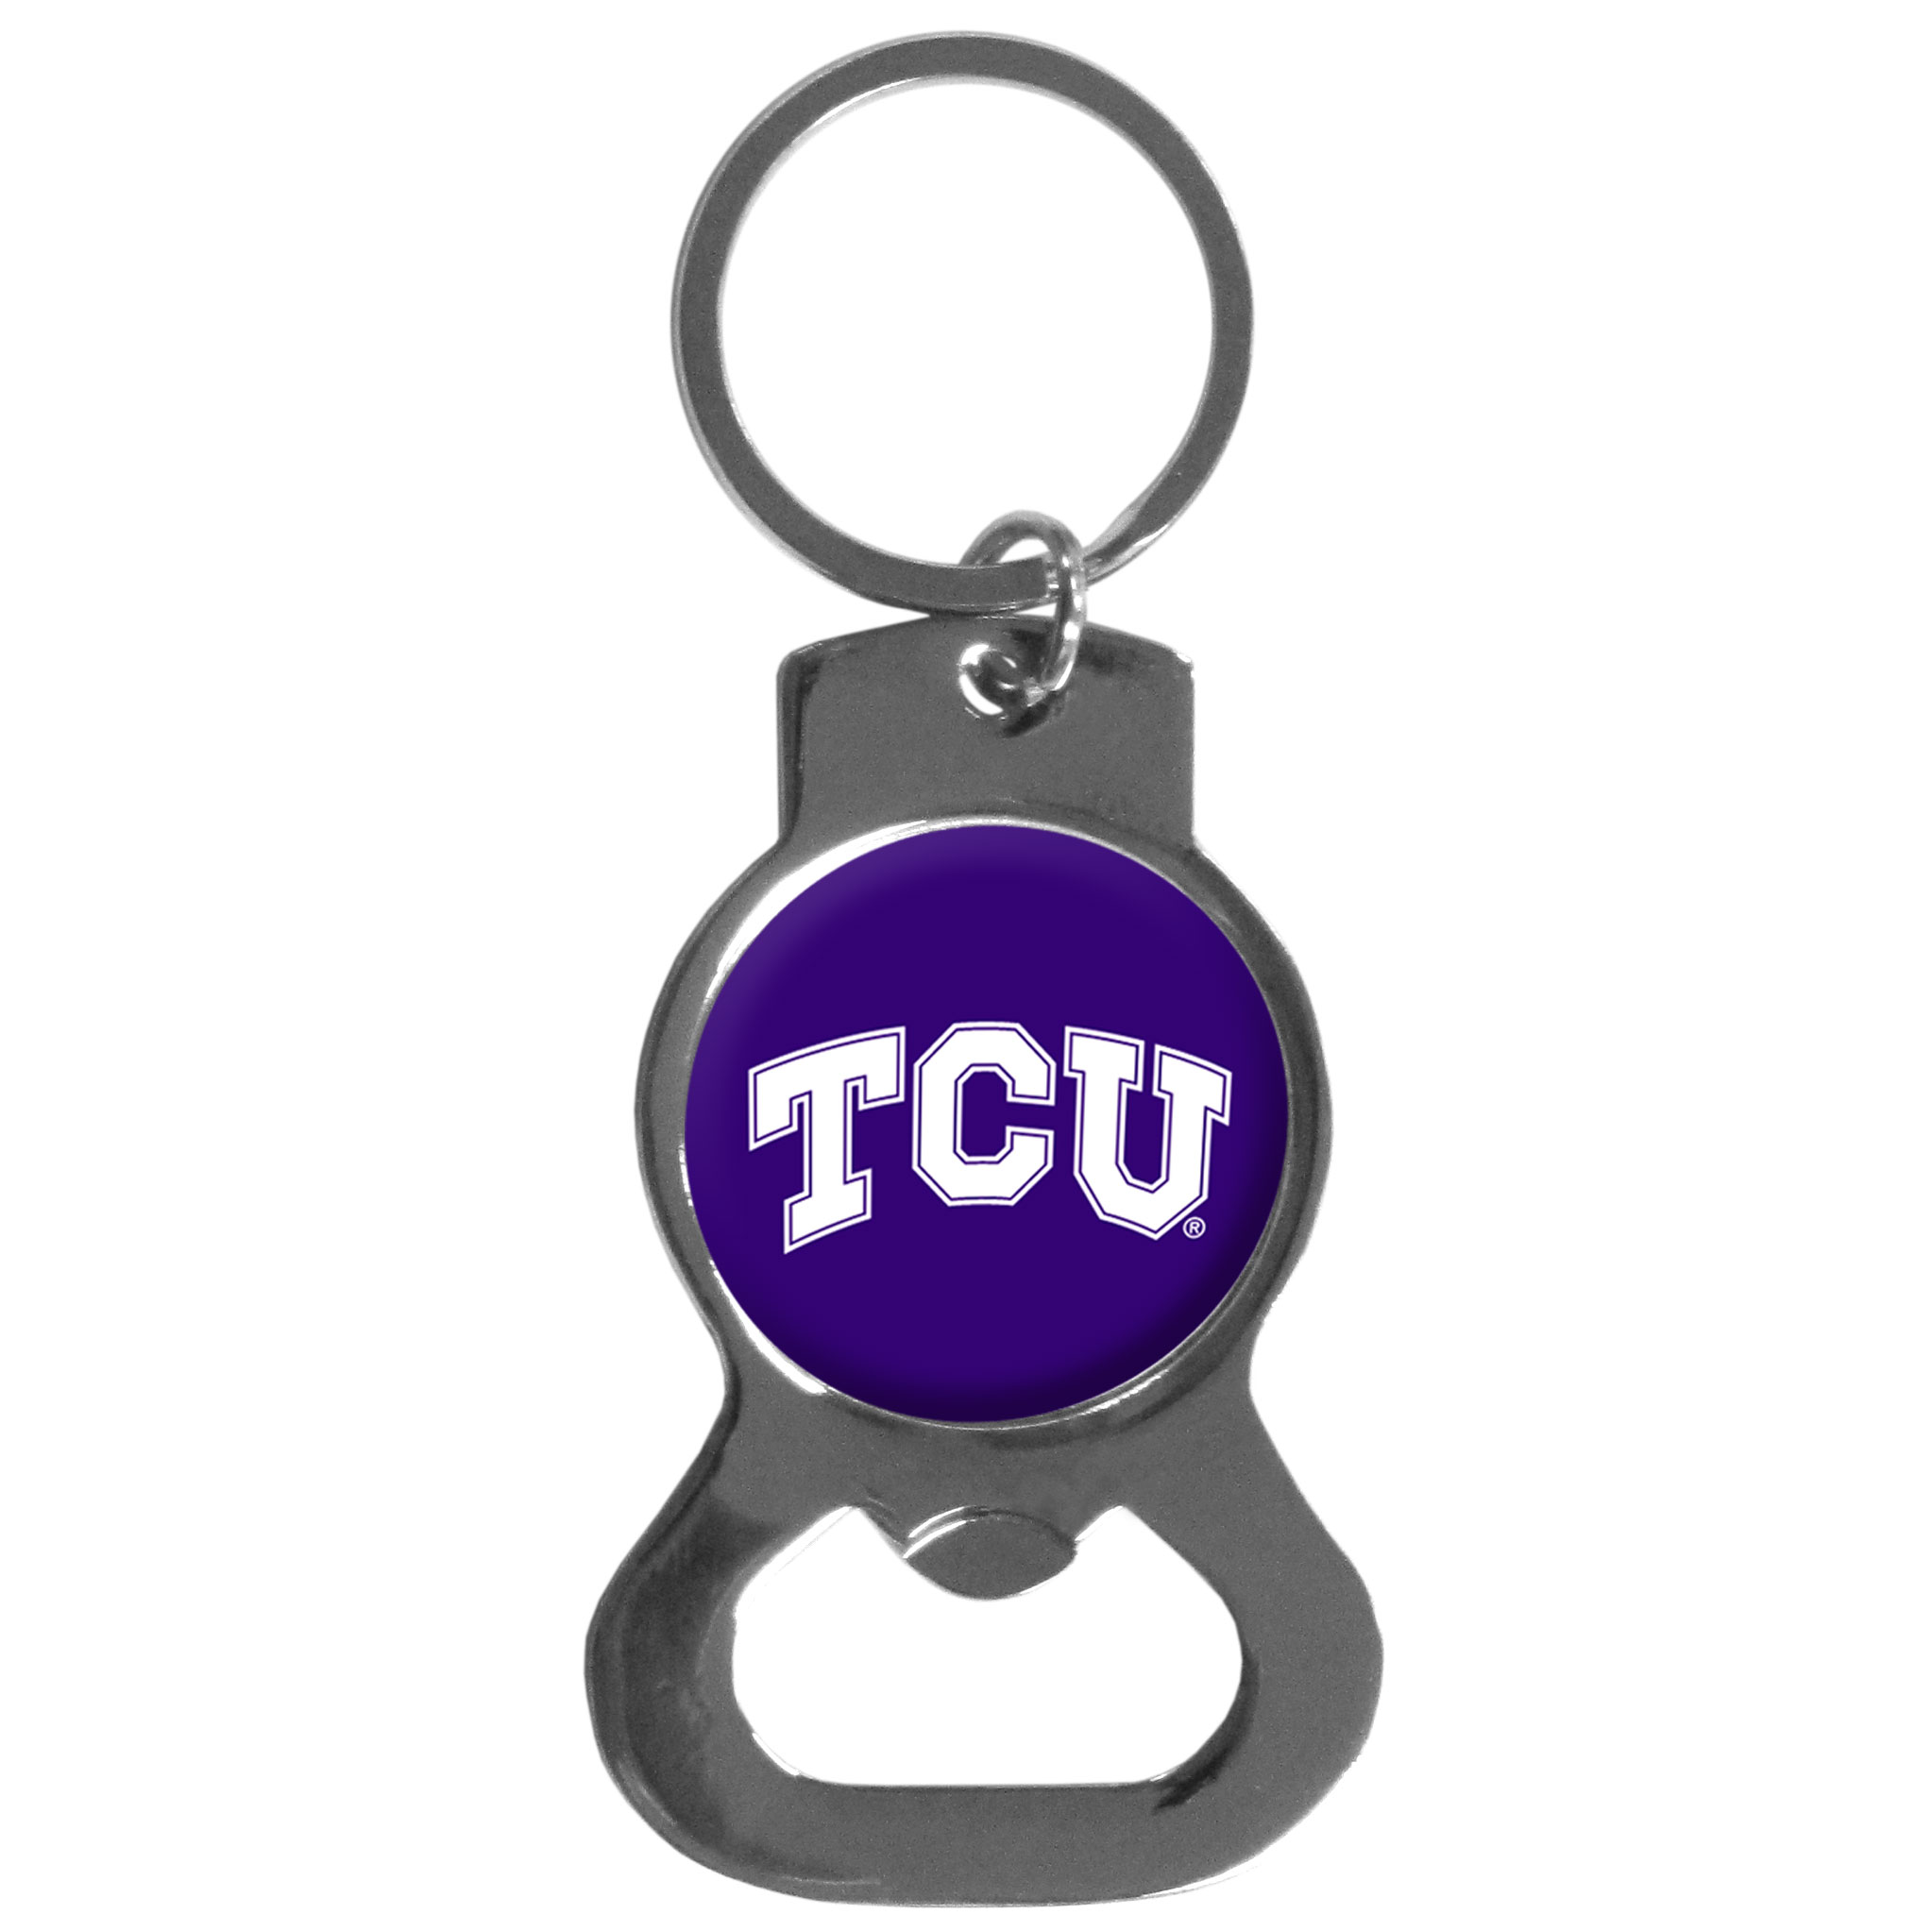 TCU Horned Frogs Bottle Opener Key Chain - Hate searching for a bottle opener, get our TCU Horned Frogs bottle opener key chain and never have to search again! The high polish key chain features a bright team emblem.